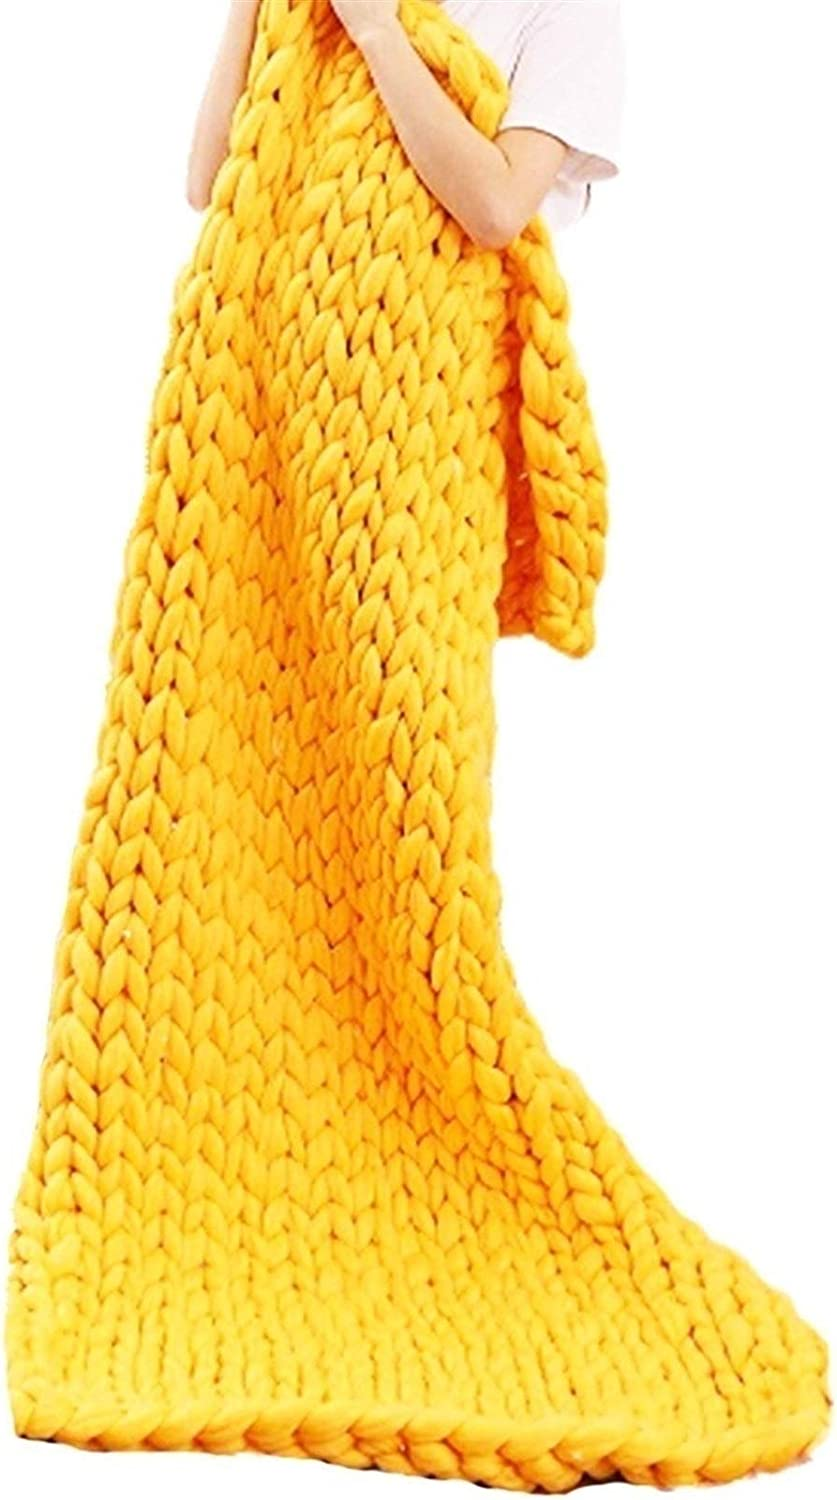 ZCXBHD Chunky Hand Knitted service Conditioning Blanket Throw Challenge the lowest price of Japan ☆ Air